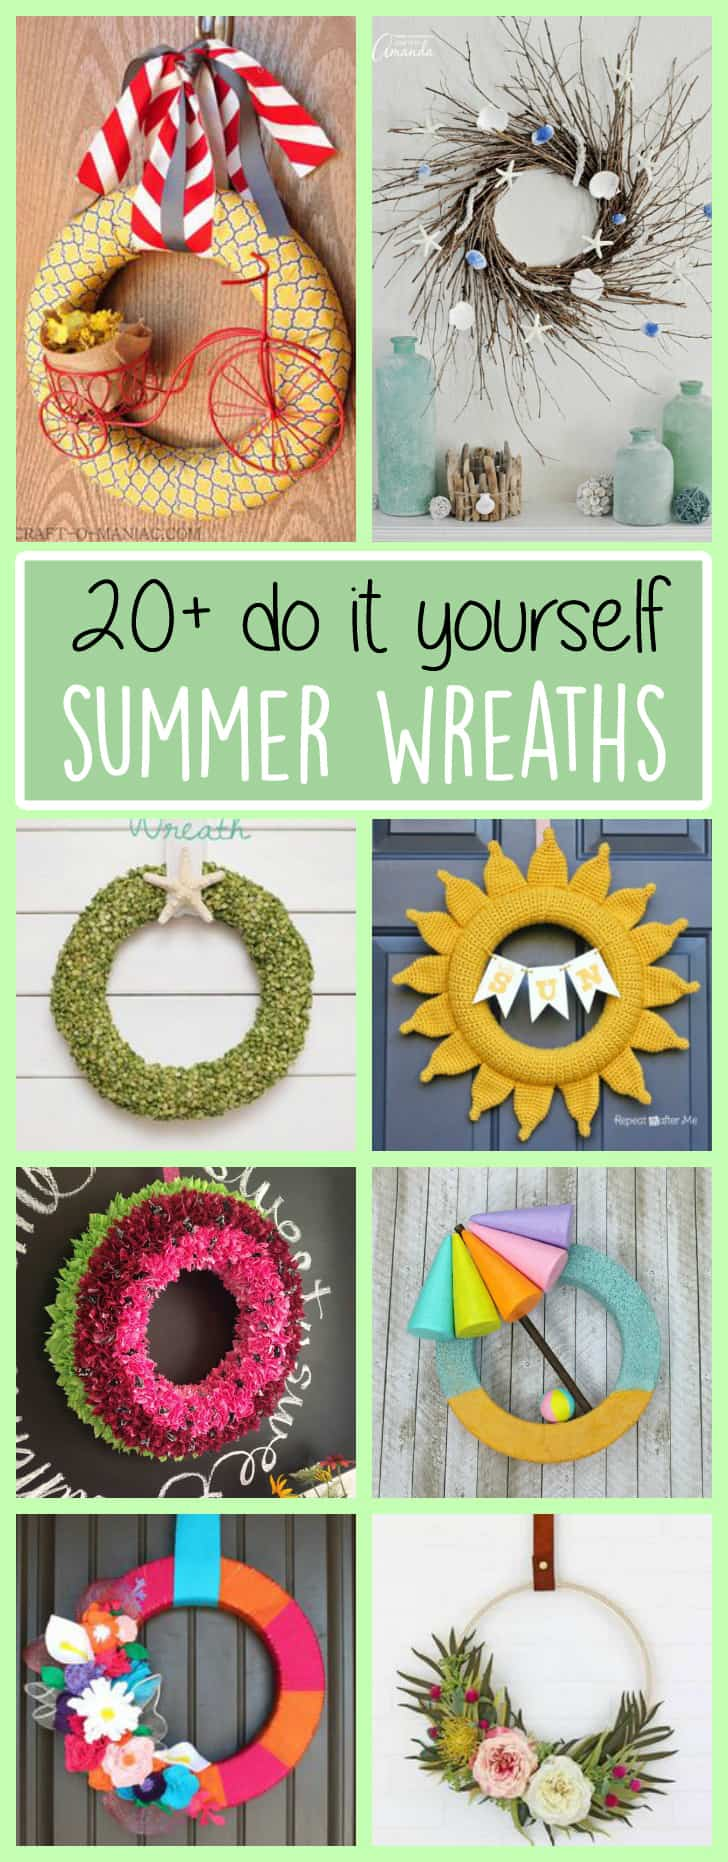 adult crafts ideas diy summer wreaths 20 beautiful statement wreaths for 1022